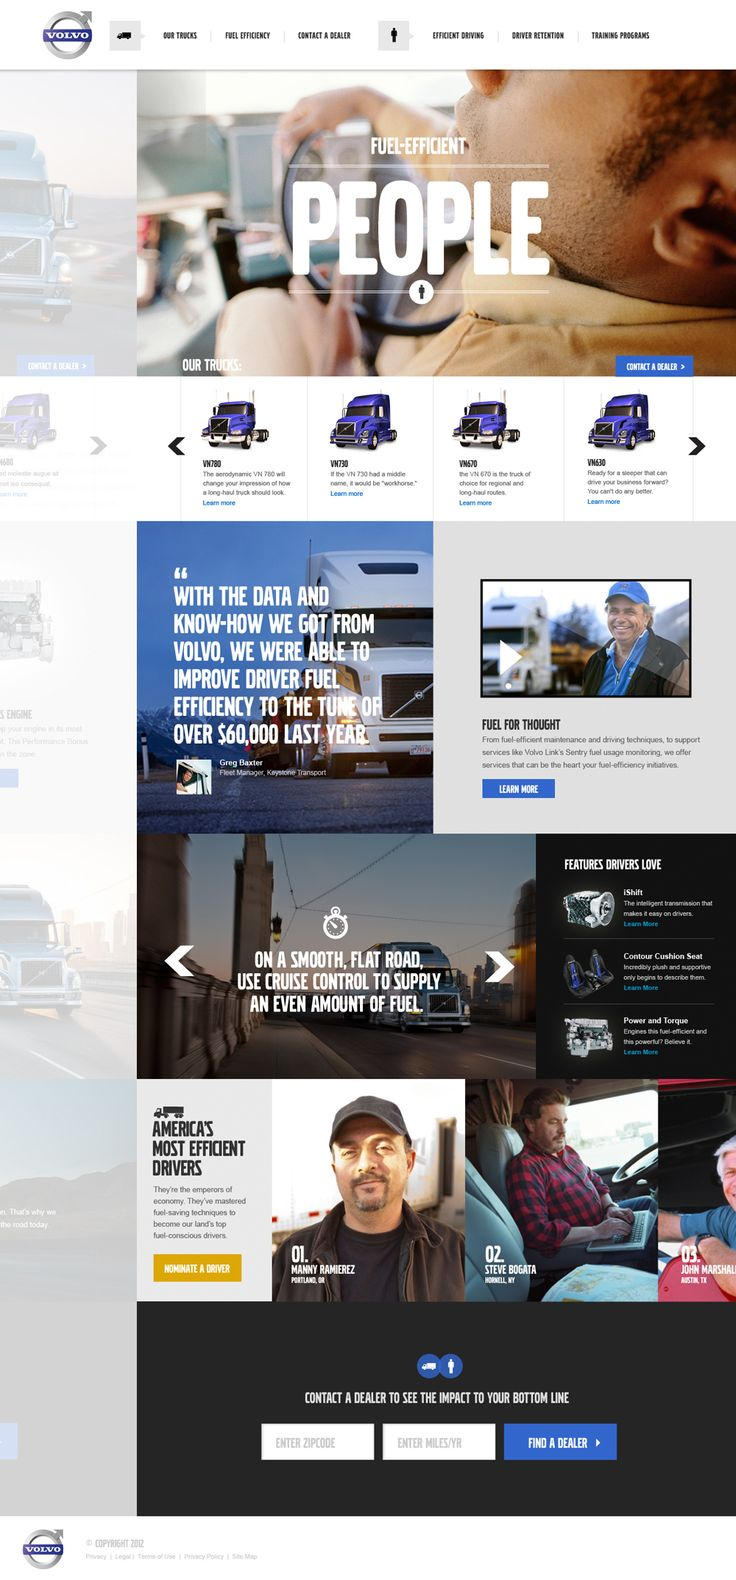 Megan Man #webdesign #it #web #design #layout #userinterface #website #webdesign